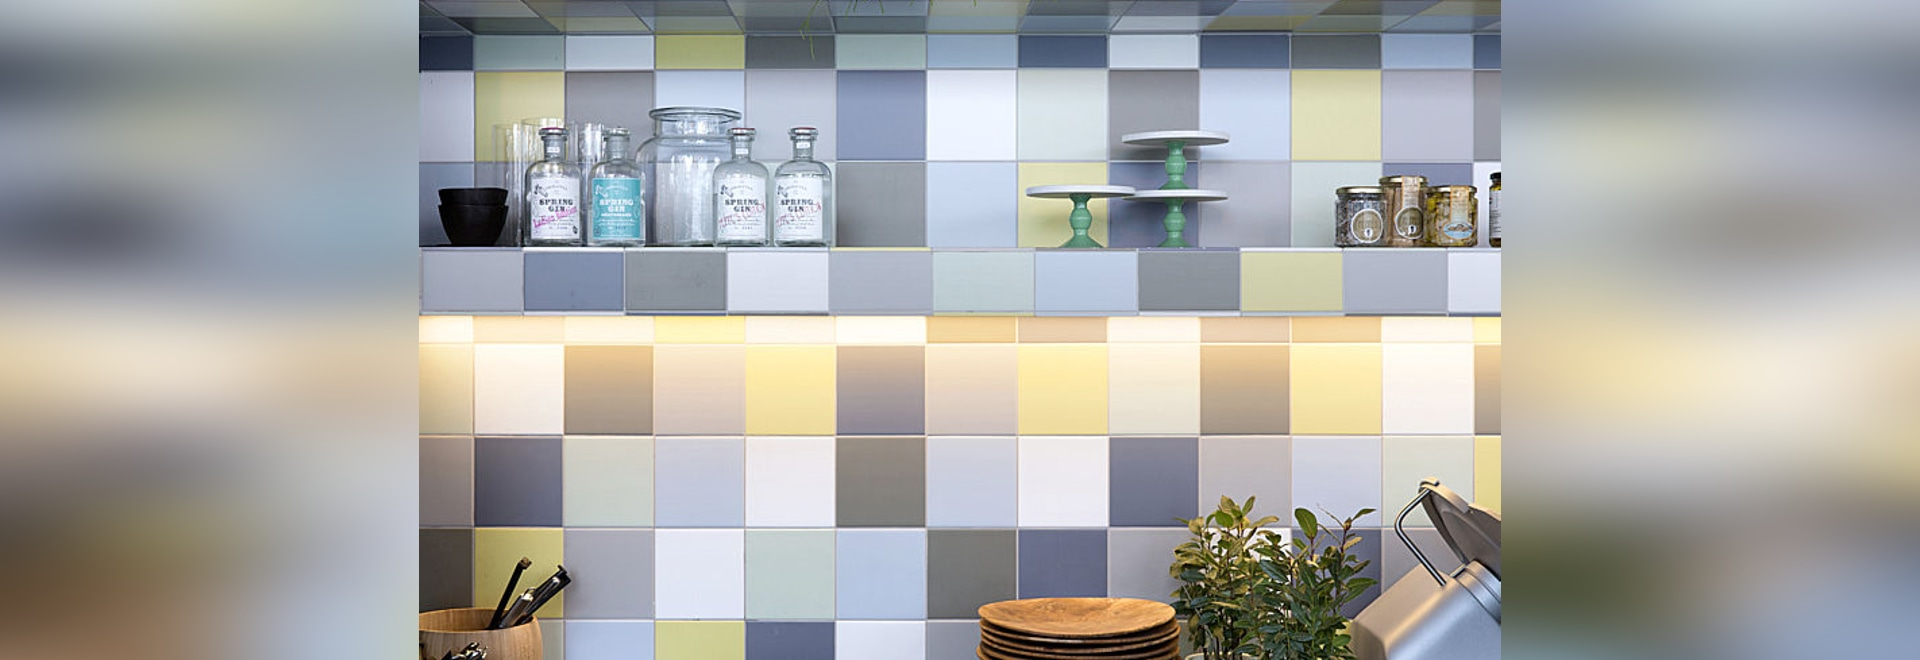 Unique and innovative concept for authentic ceramic walls